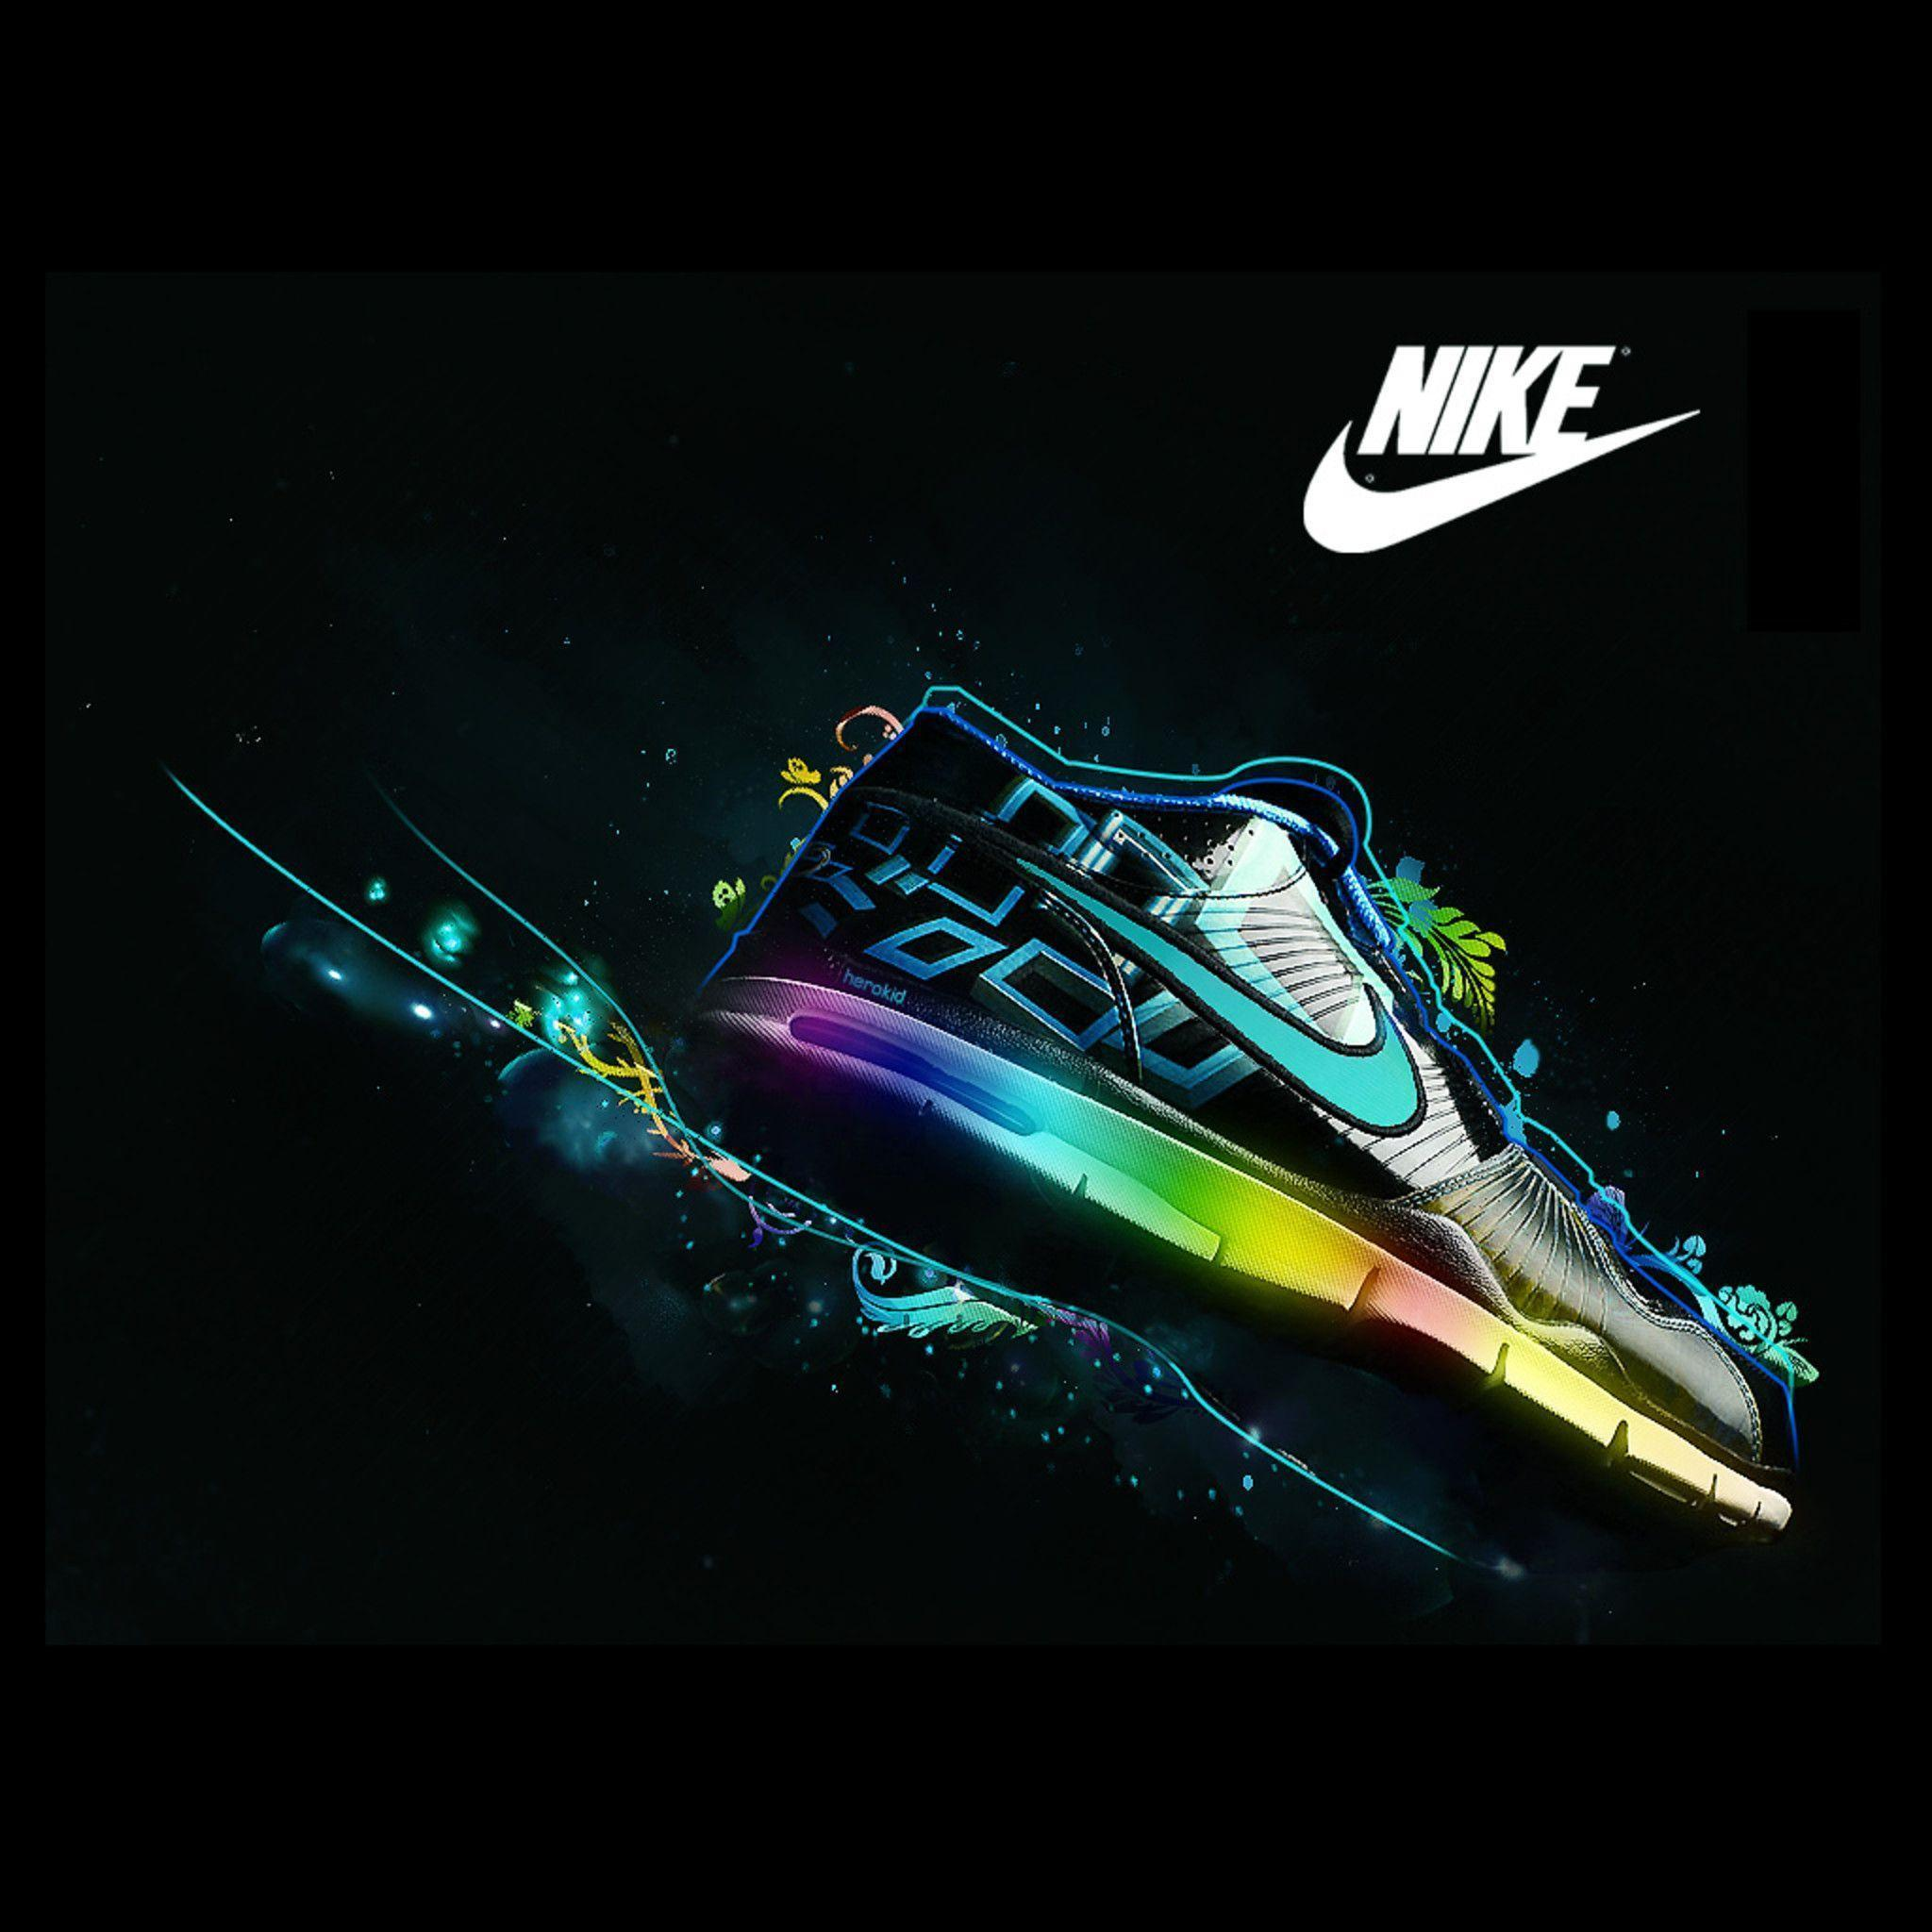 Nike Shoes Wallpapers